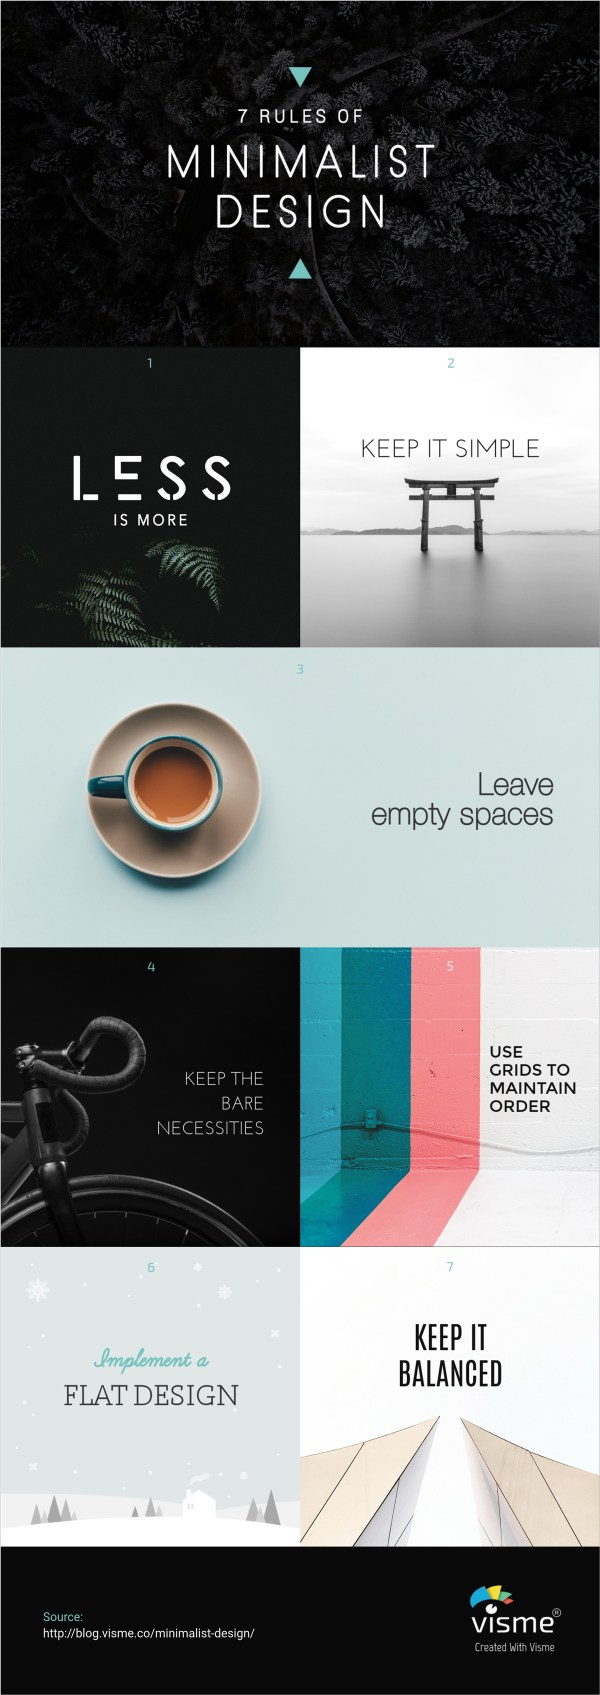 Minimalist Graphic Design 20 Examples Inspire Creations Visual Learning Center